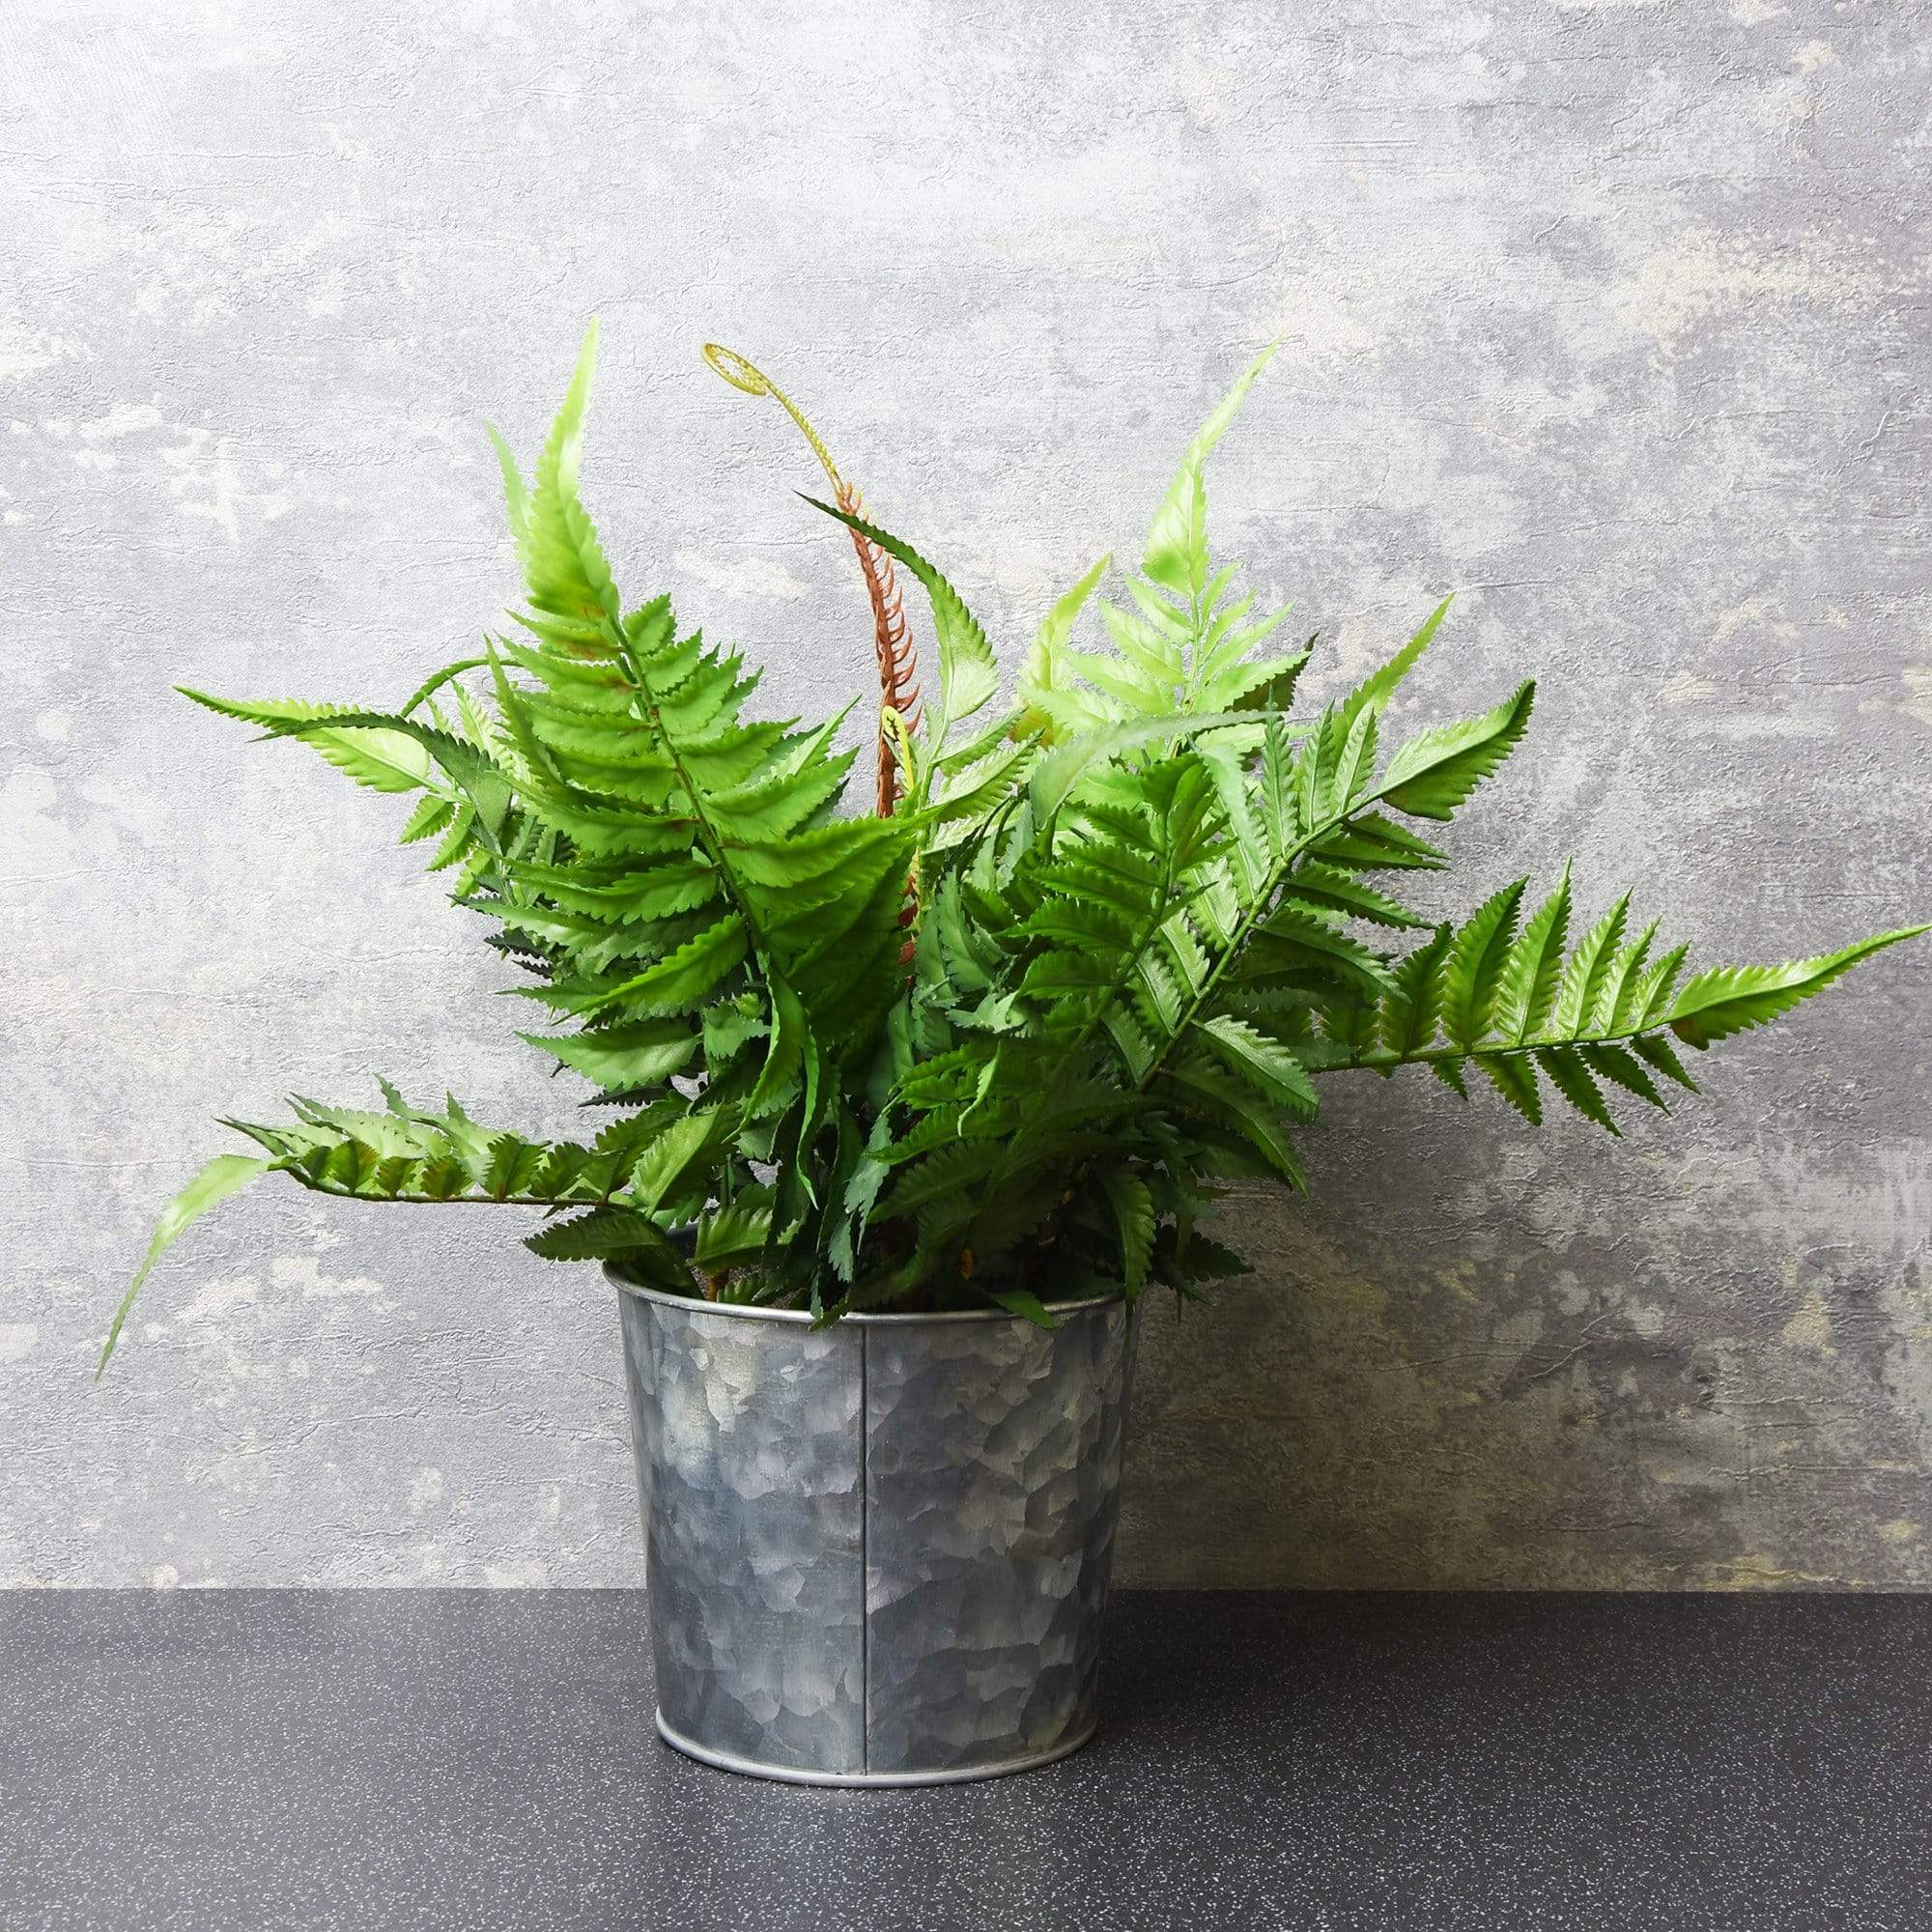 Candlelight Home Artificial Plants & Flowers The Flower Patch Fern in Pot Grey 29cm 4PK